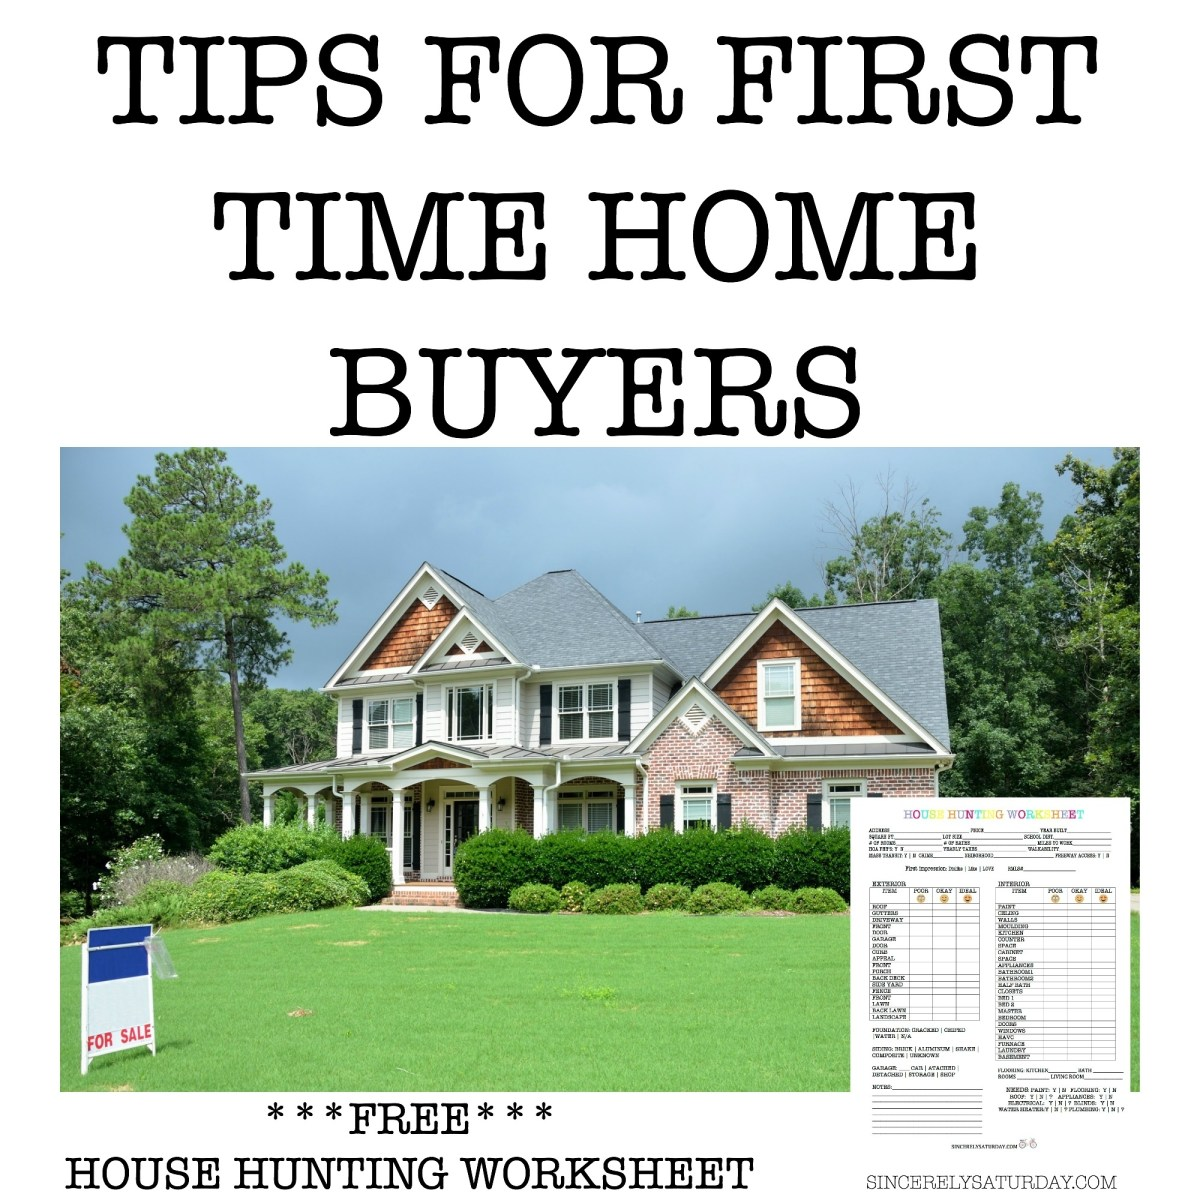 TIPS FOR FIRST TIME HOME BUYERS - FREE HOUSE HUNTING WORKSHEET